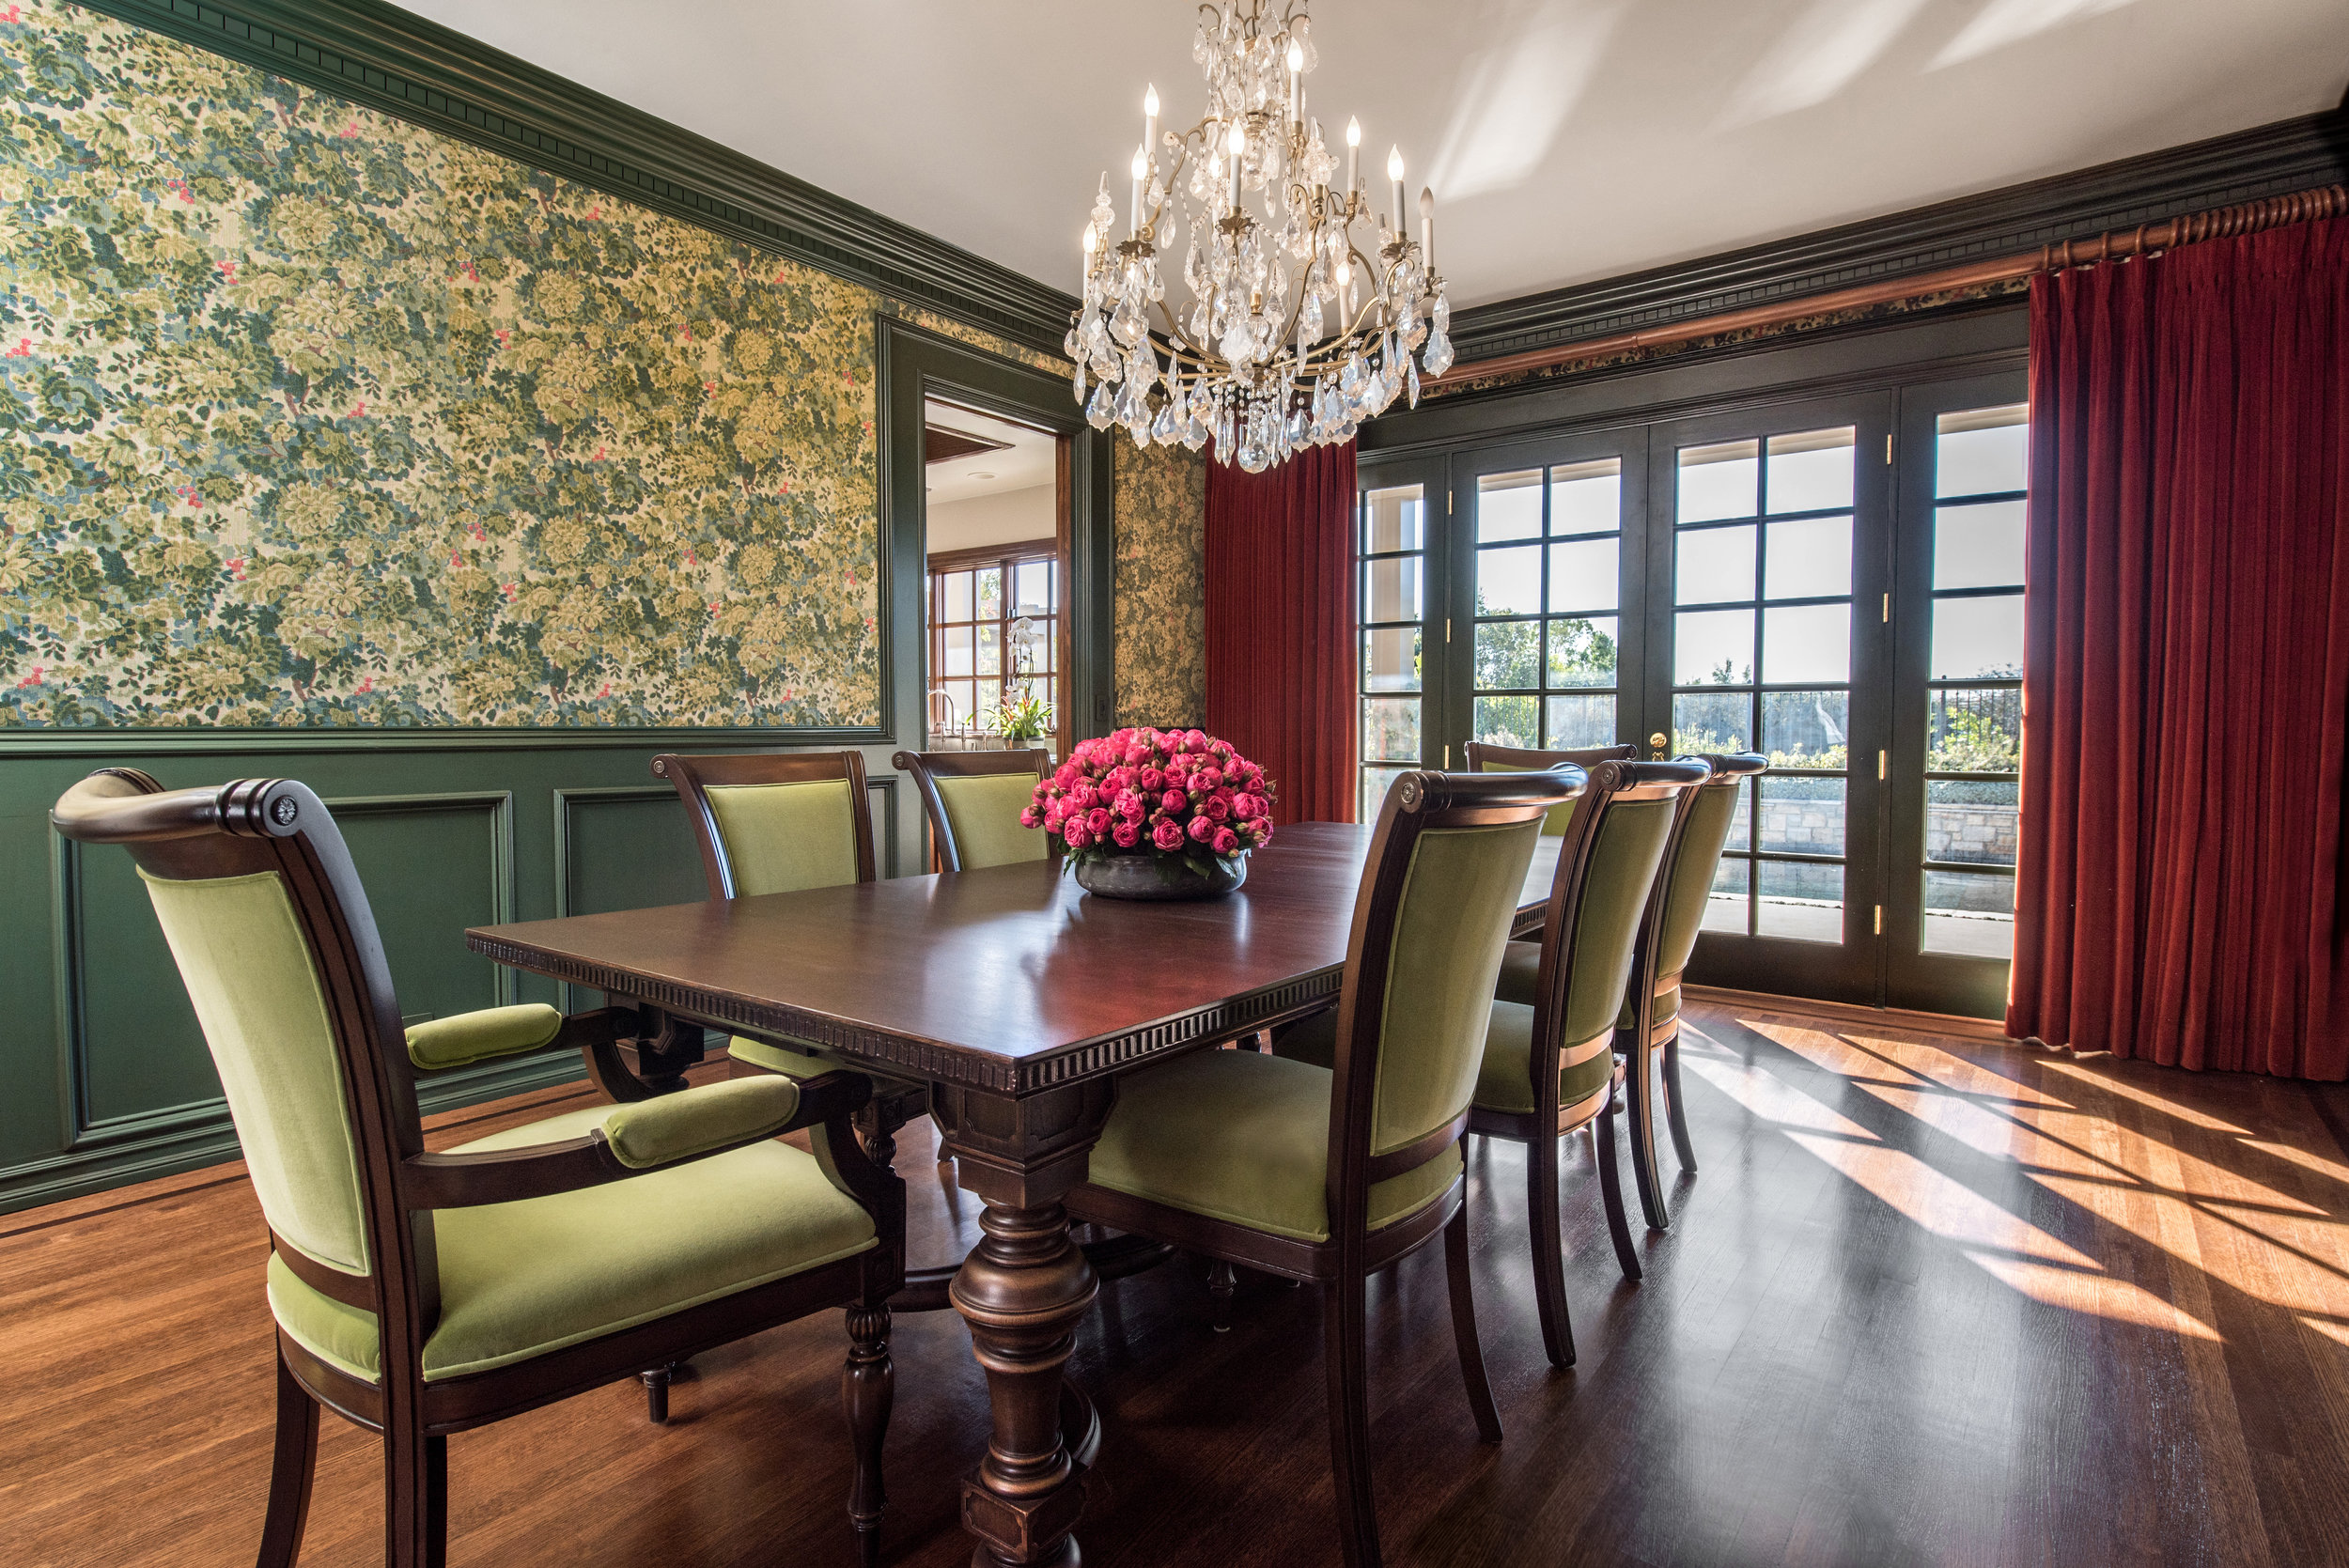 Sarah-barnard-design-traditional-dining-room.jpg